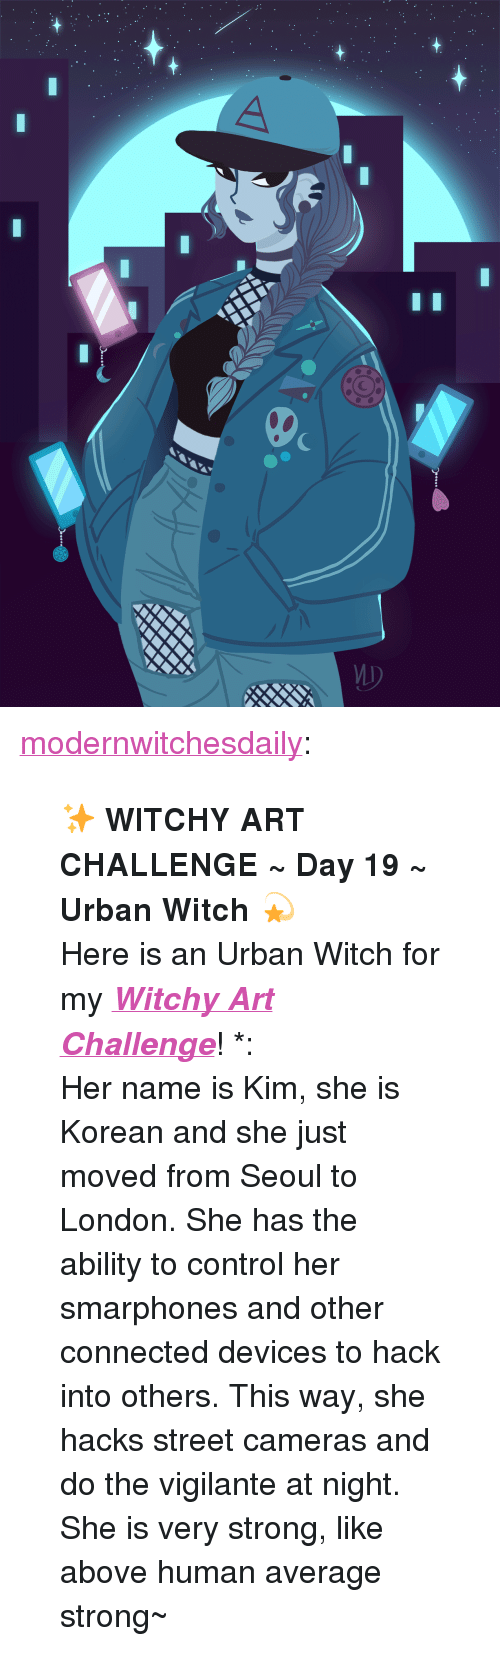 """Tumblr, Control, and Summer: <p><a href=""""http://modernwitchesdaily.tumblr.com/post/170164037339/witchy-art-challenge-day-19-urban-witch"""" class=""""tumblr_blog"""">modernwitchesdaily</a>:</p> <blockquote> <p><b>✨ WITCHY ART CHALLENGE ~ Day 19 ~ Urban Witch 💫</b></p> <p>Here is an Urban Witch for my<i><b> <a href=""""http://modernwitchesdaily.tumblr.com/post/146606149714/witchy-art-challenge-summer-is-coming-and"""">Witchy Art Challenge</a></b></i>! *:・゚✧ <br/>Her name is Kim, she is Korean and she just moved from Seoul to London. She has the ability to control her smarphones and other connected devices to hack into others. This way, she hacks street cameras and do the vigilante at night. She is very strong, like above human average strong~ </p> </blockquote>"""